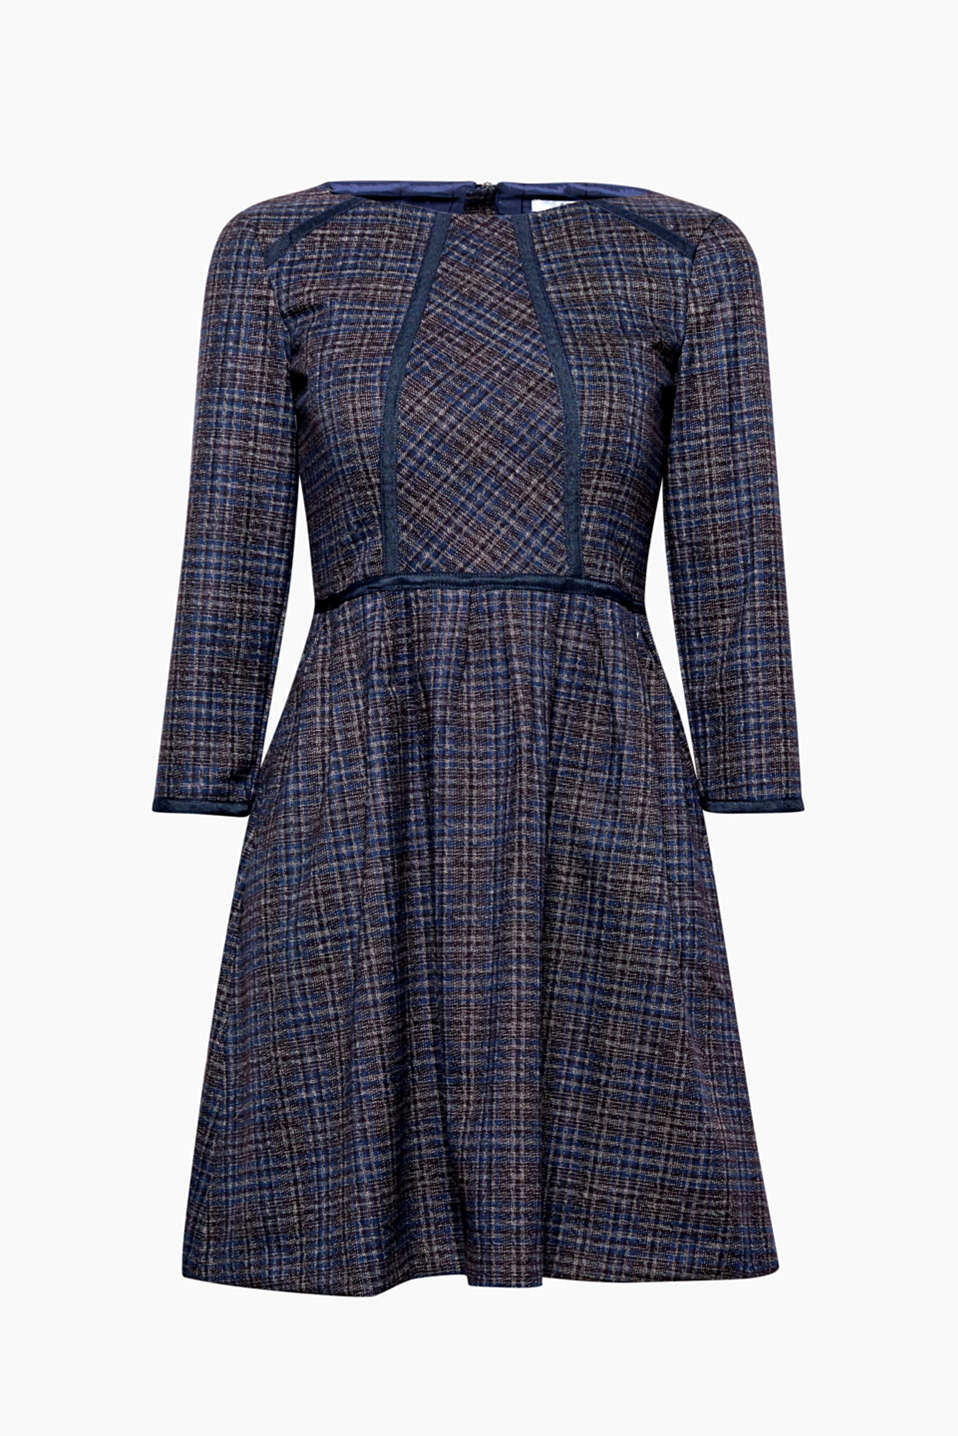 This dress with a checked pattern and feminine fit-n-flare silhouette exudes charming, retro flair.